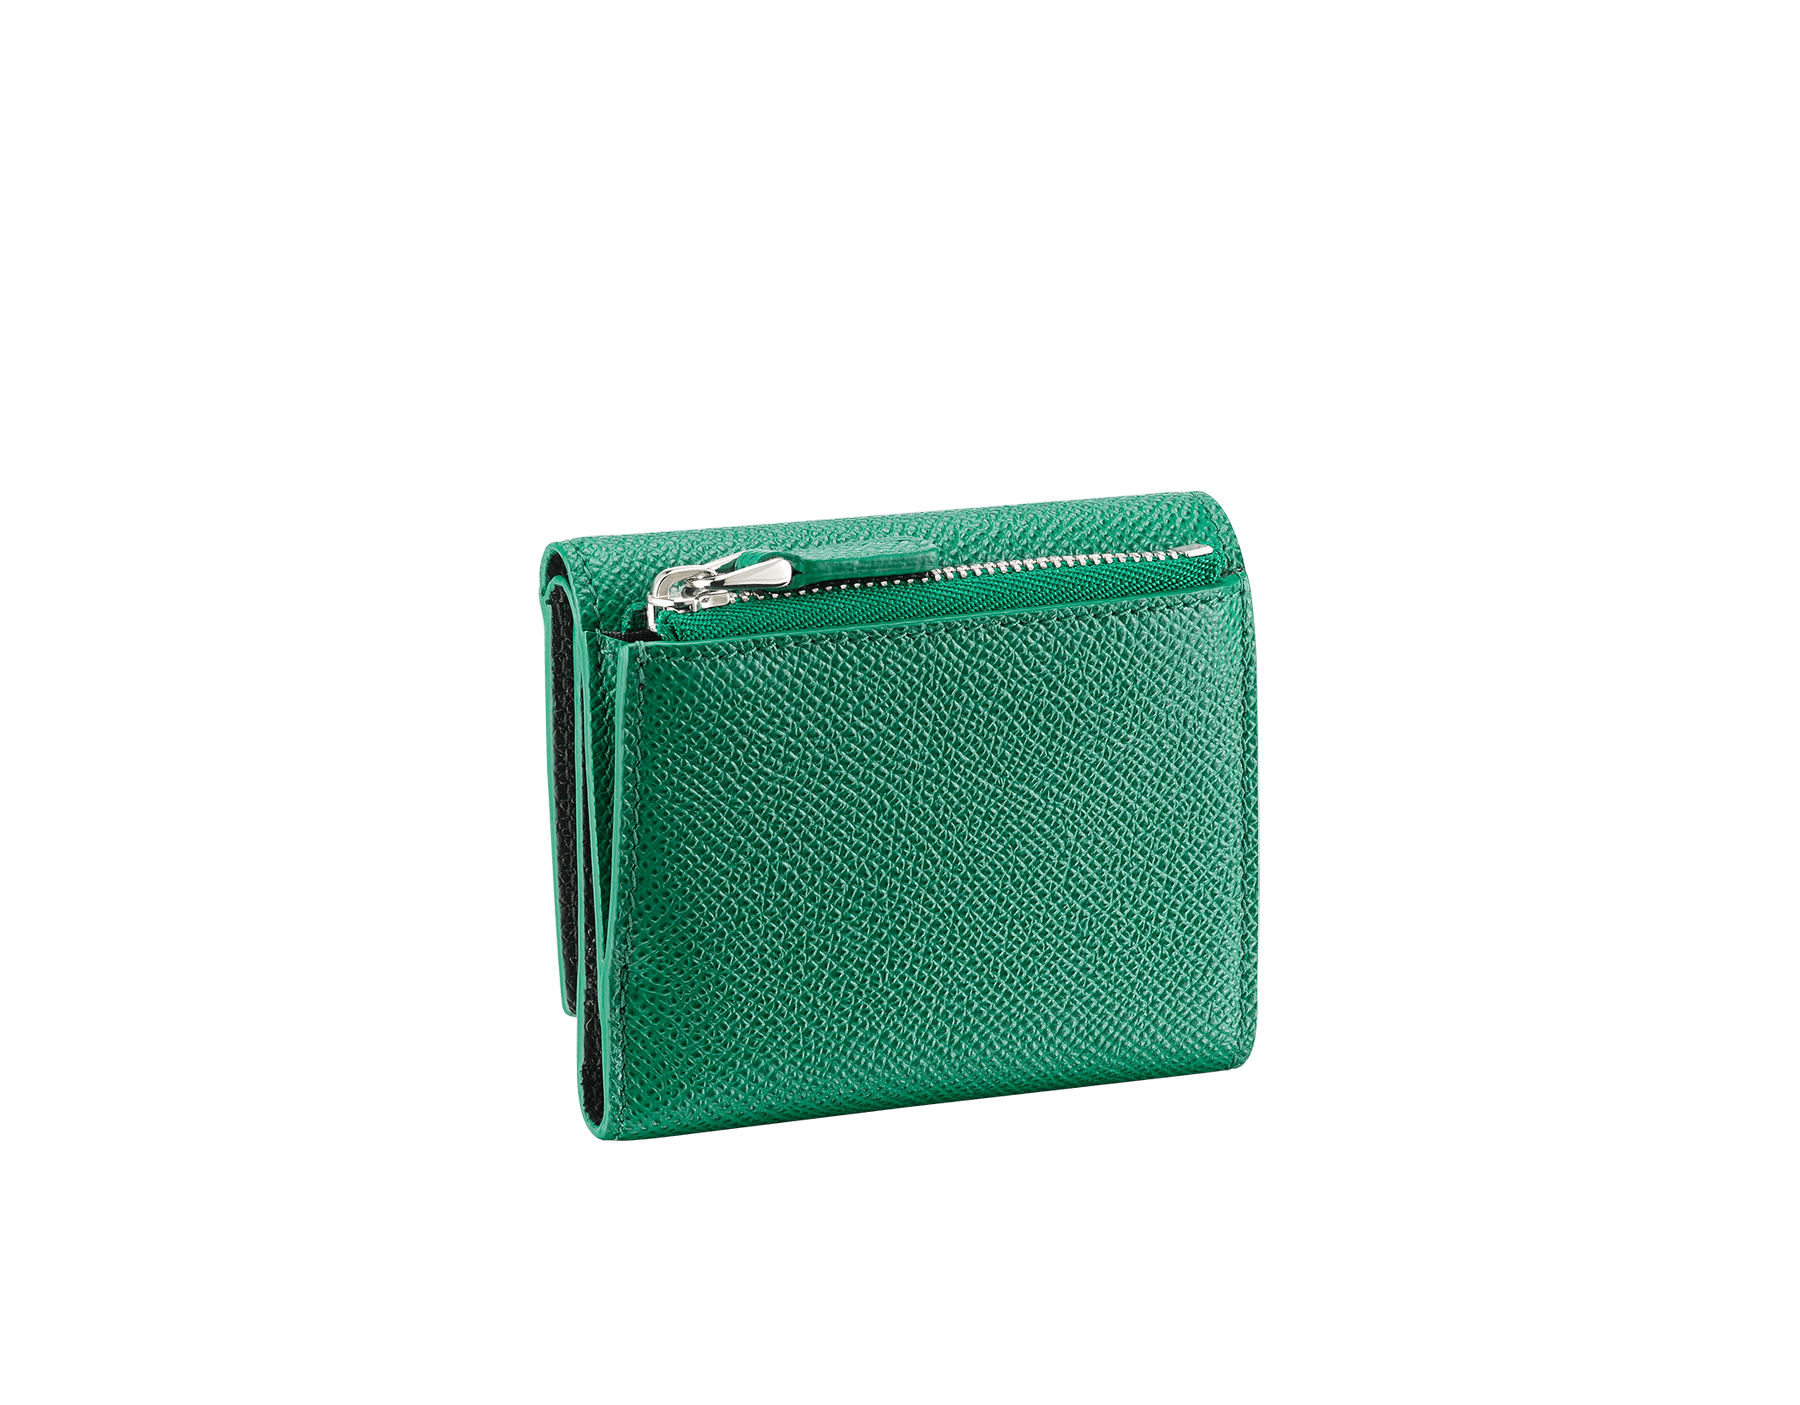 BVLGARI BVLGARI slim compact wallet in emerald green and black grain calf leather. Iconic logo closure clip in palladium plated brass. 289370 image 3